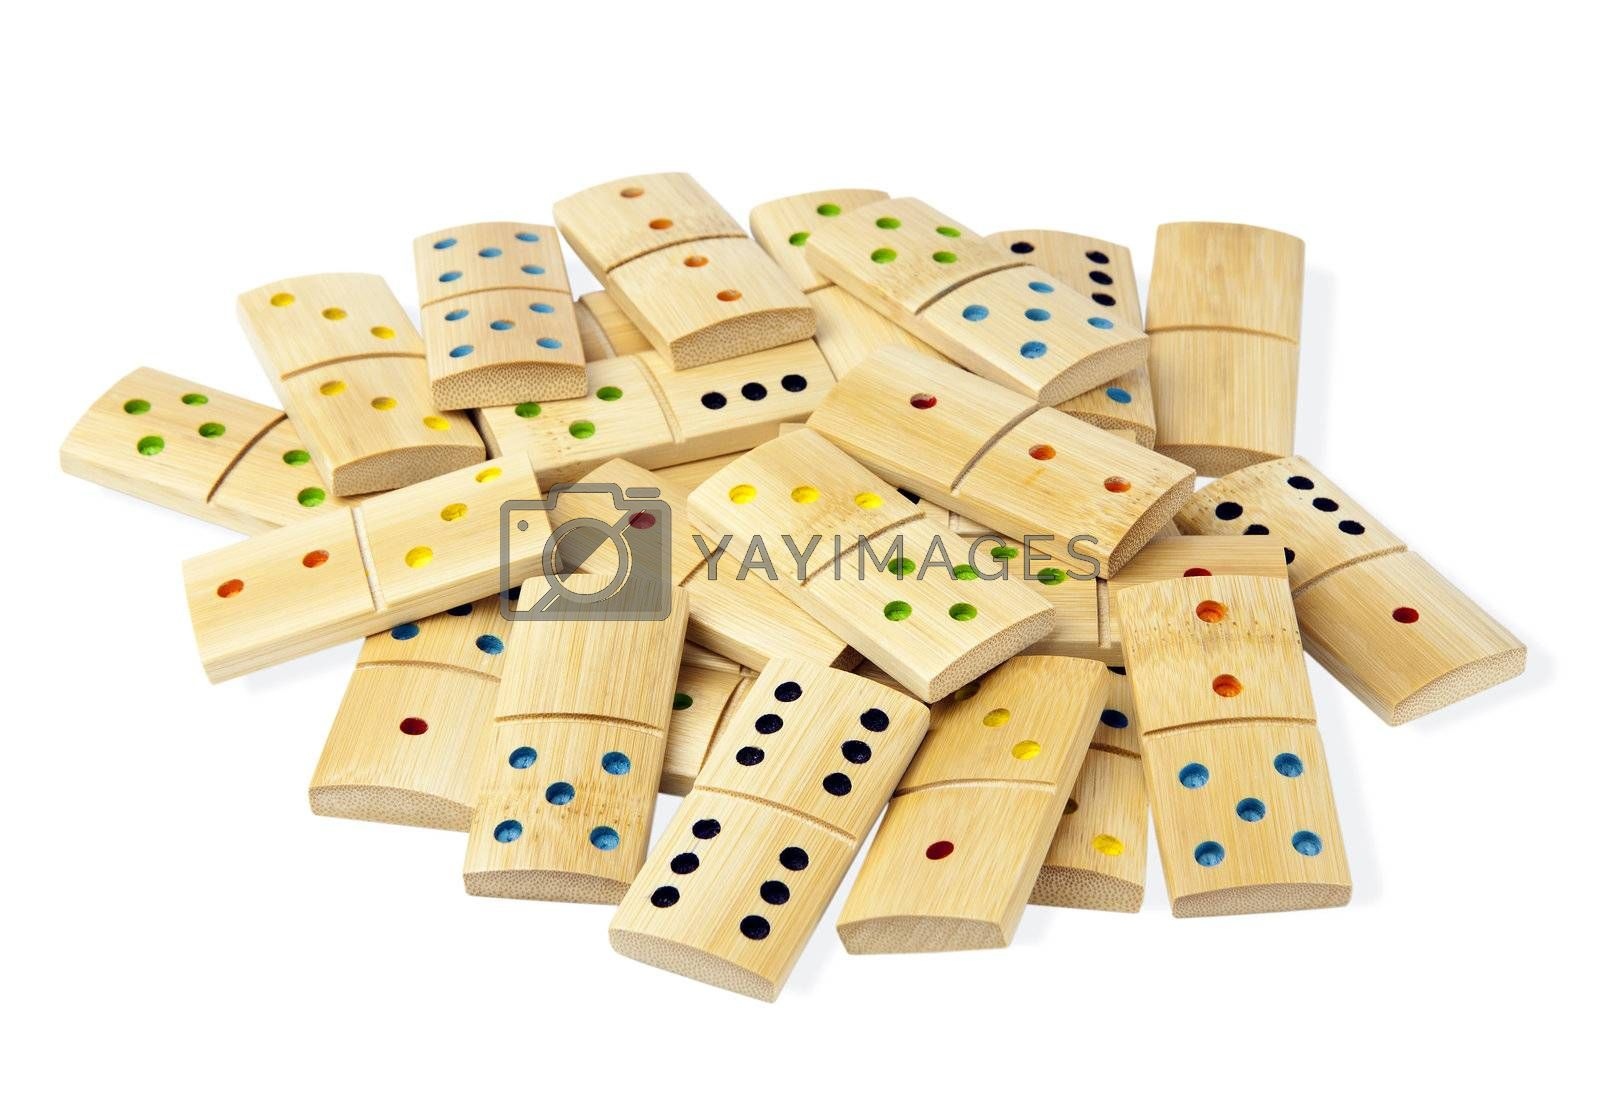 A pile of wooden dominoes isolated on white